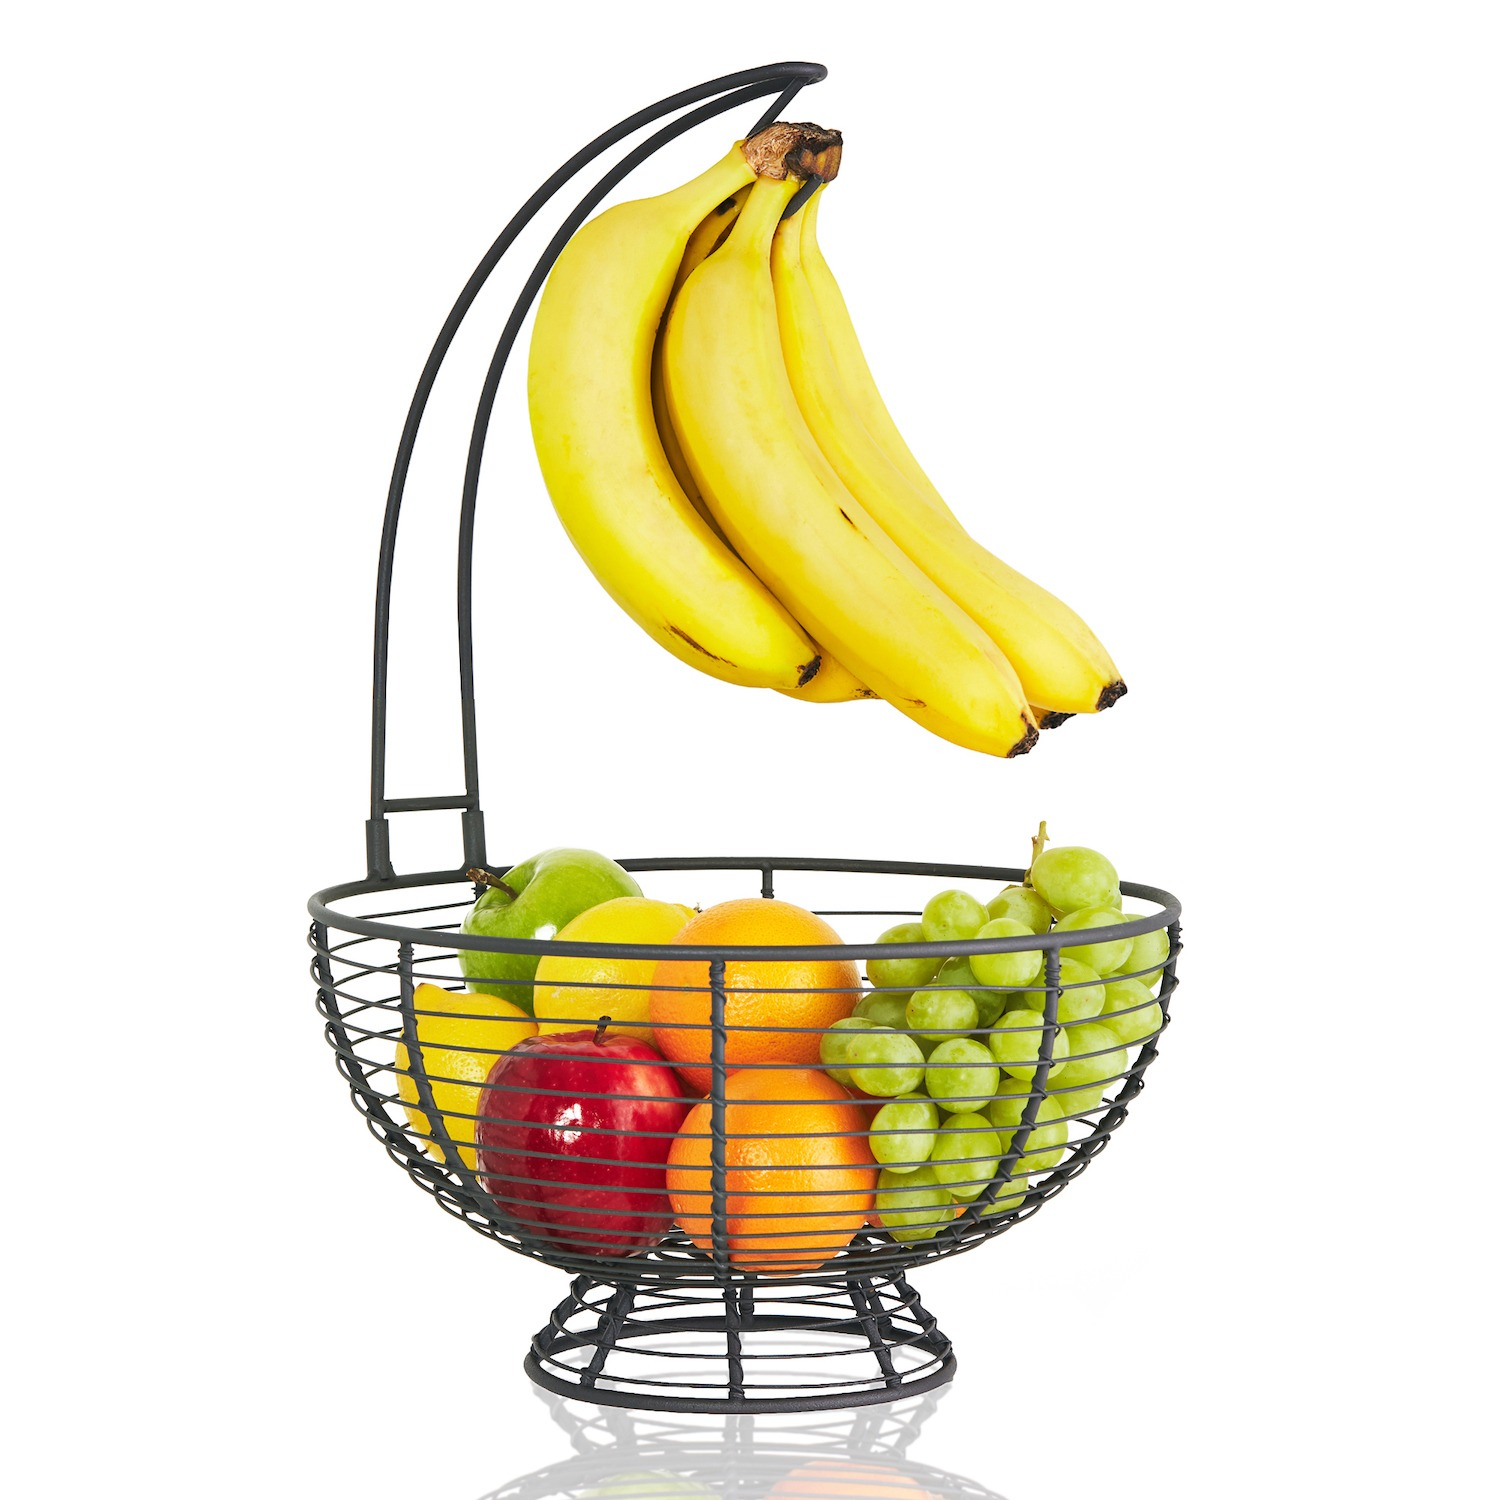 Fruit Basket With Banana Hanger